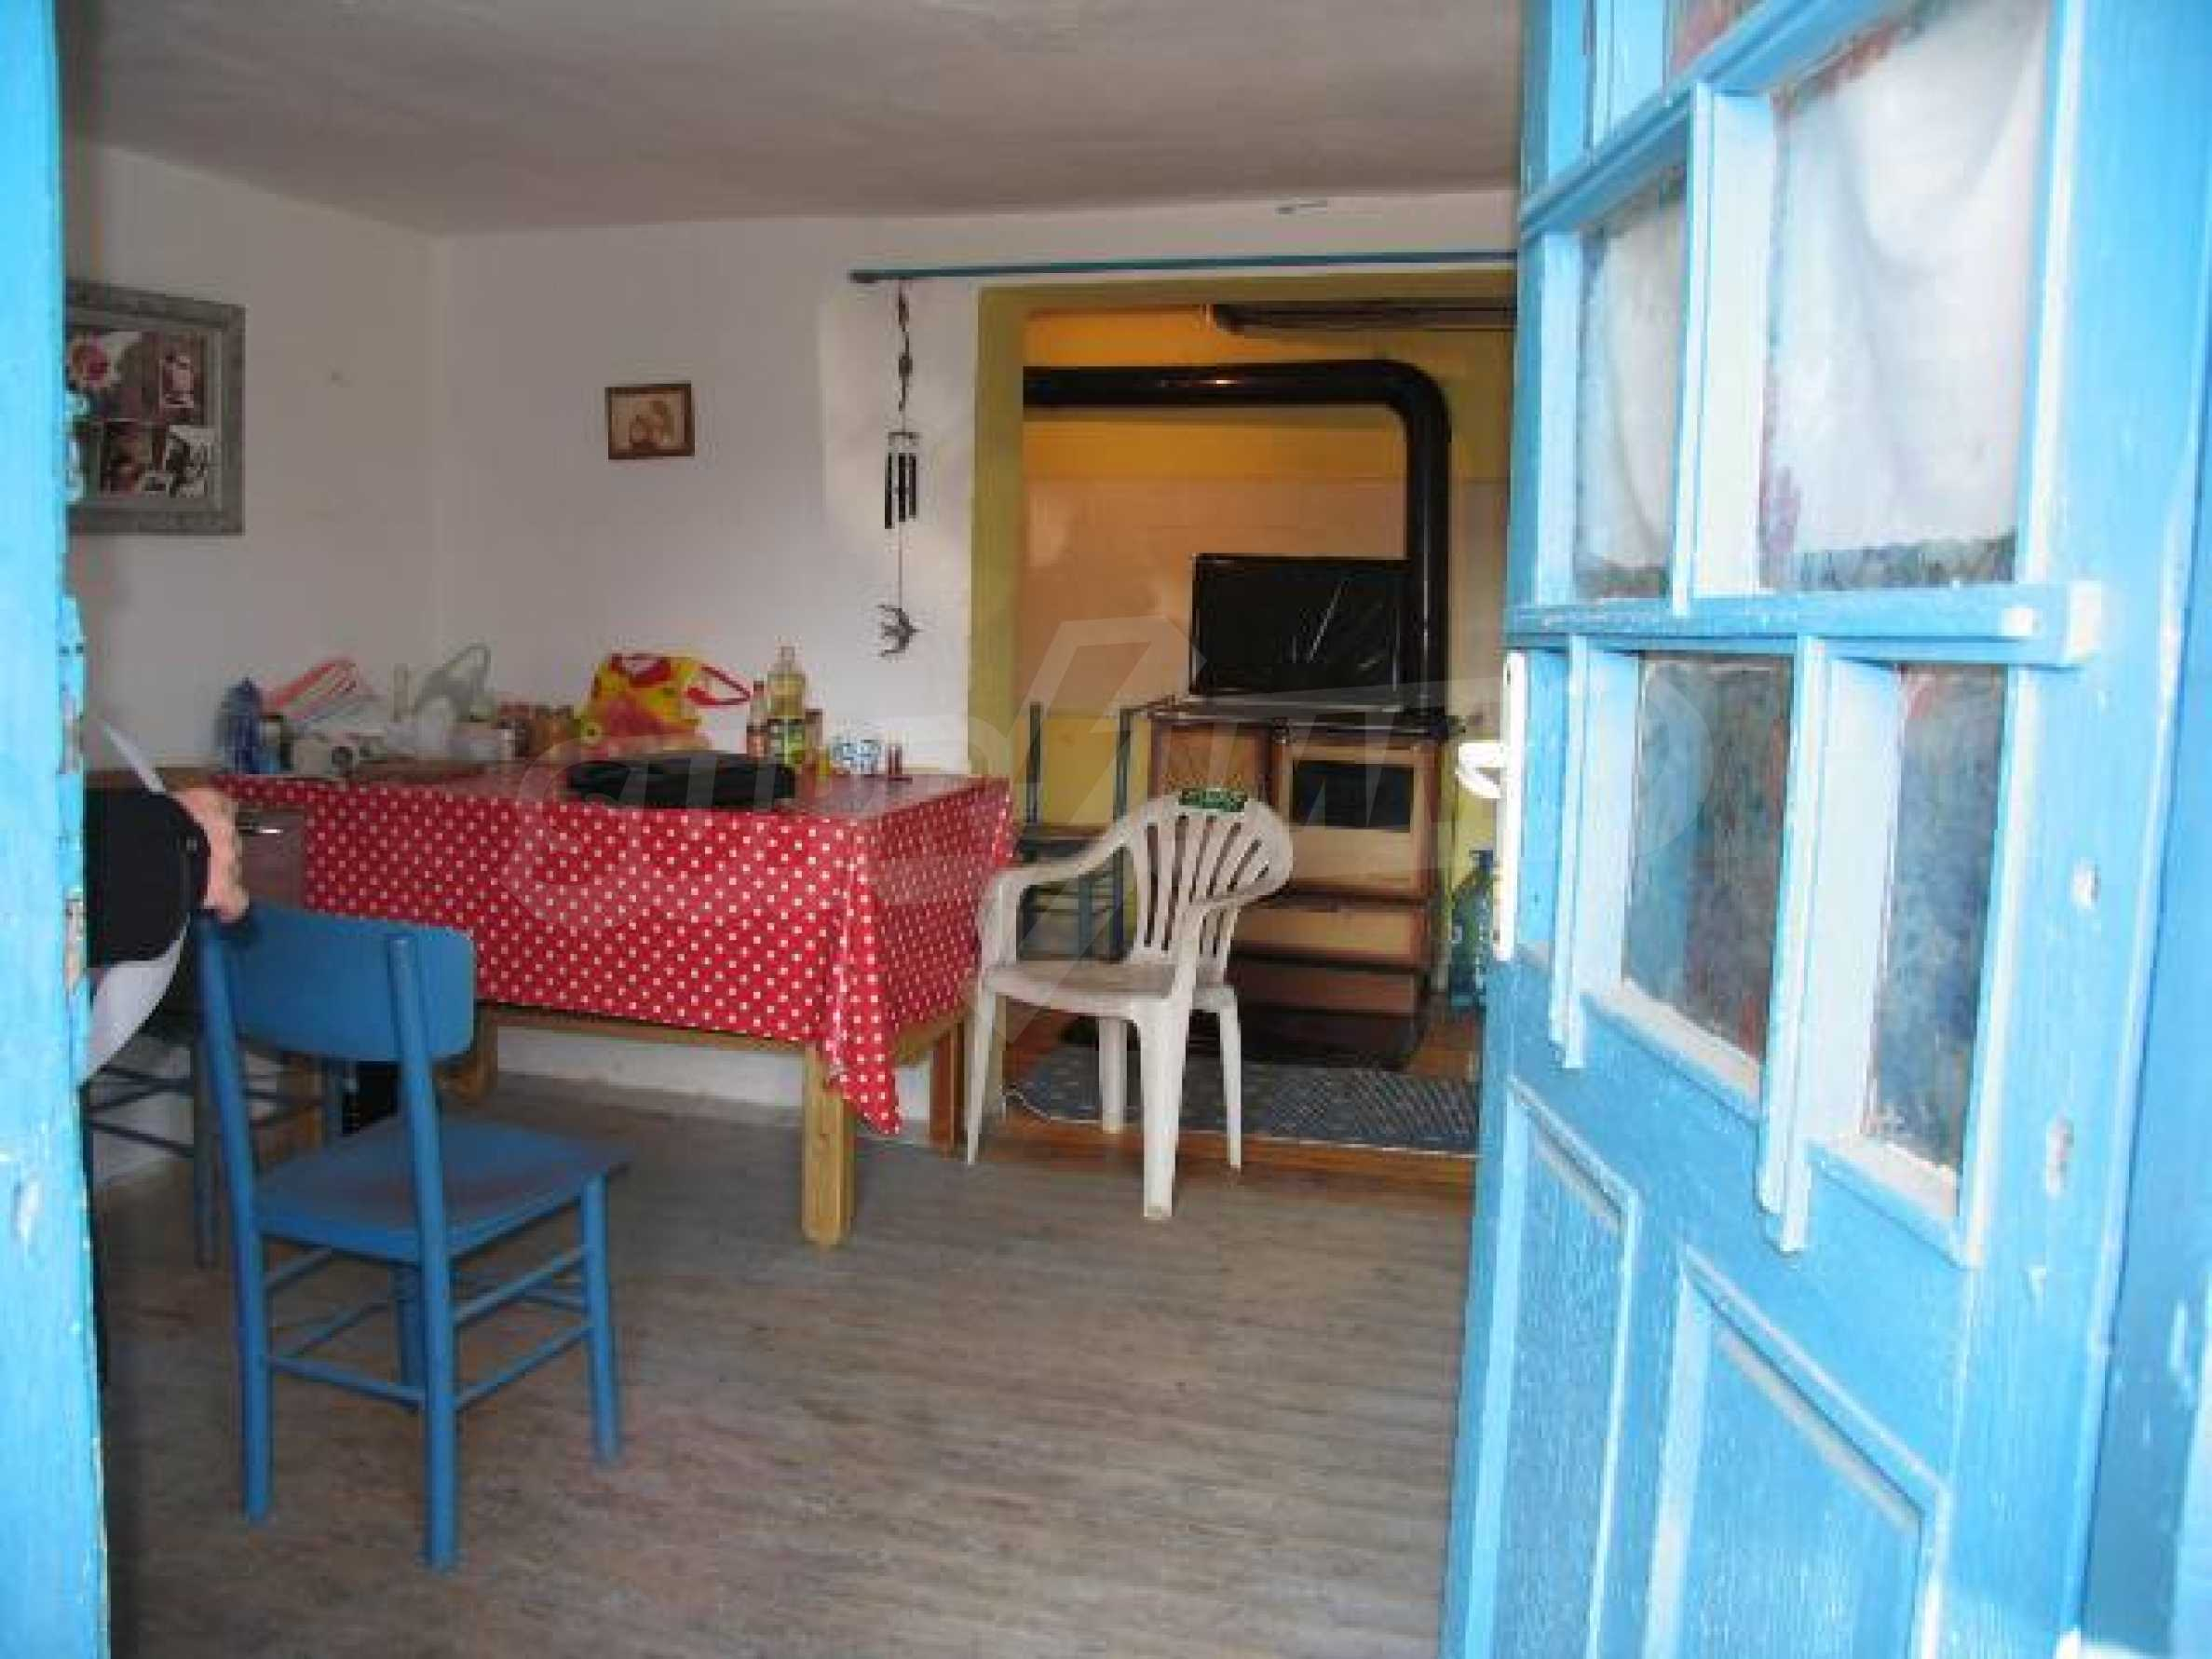 House for sale in Byala resort - just a few minutes from the sea 4